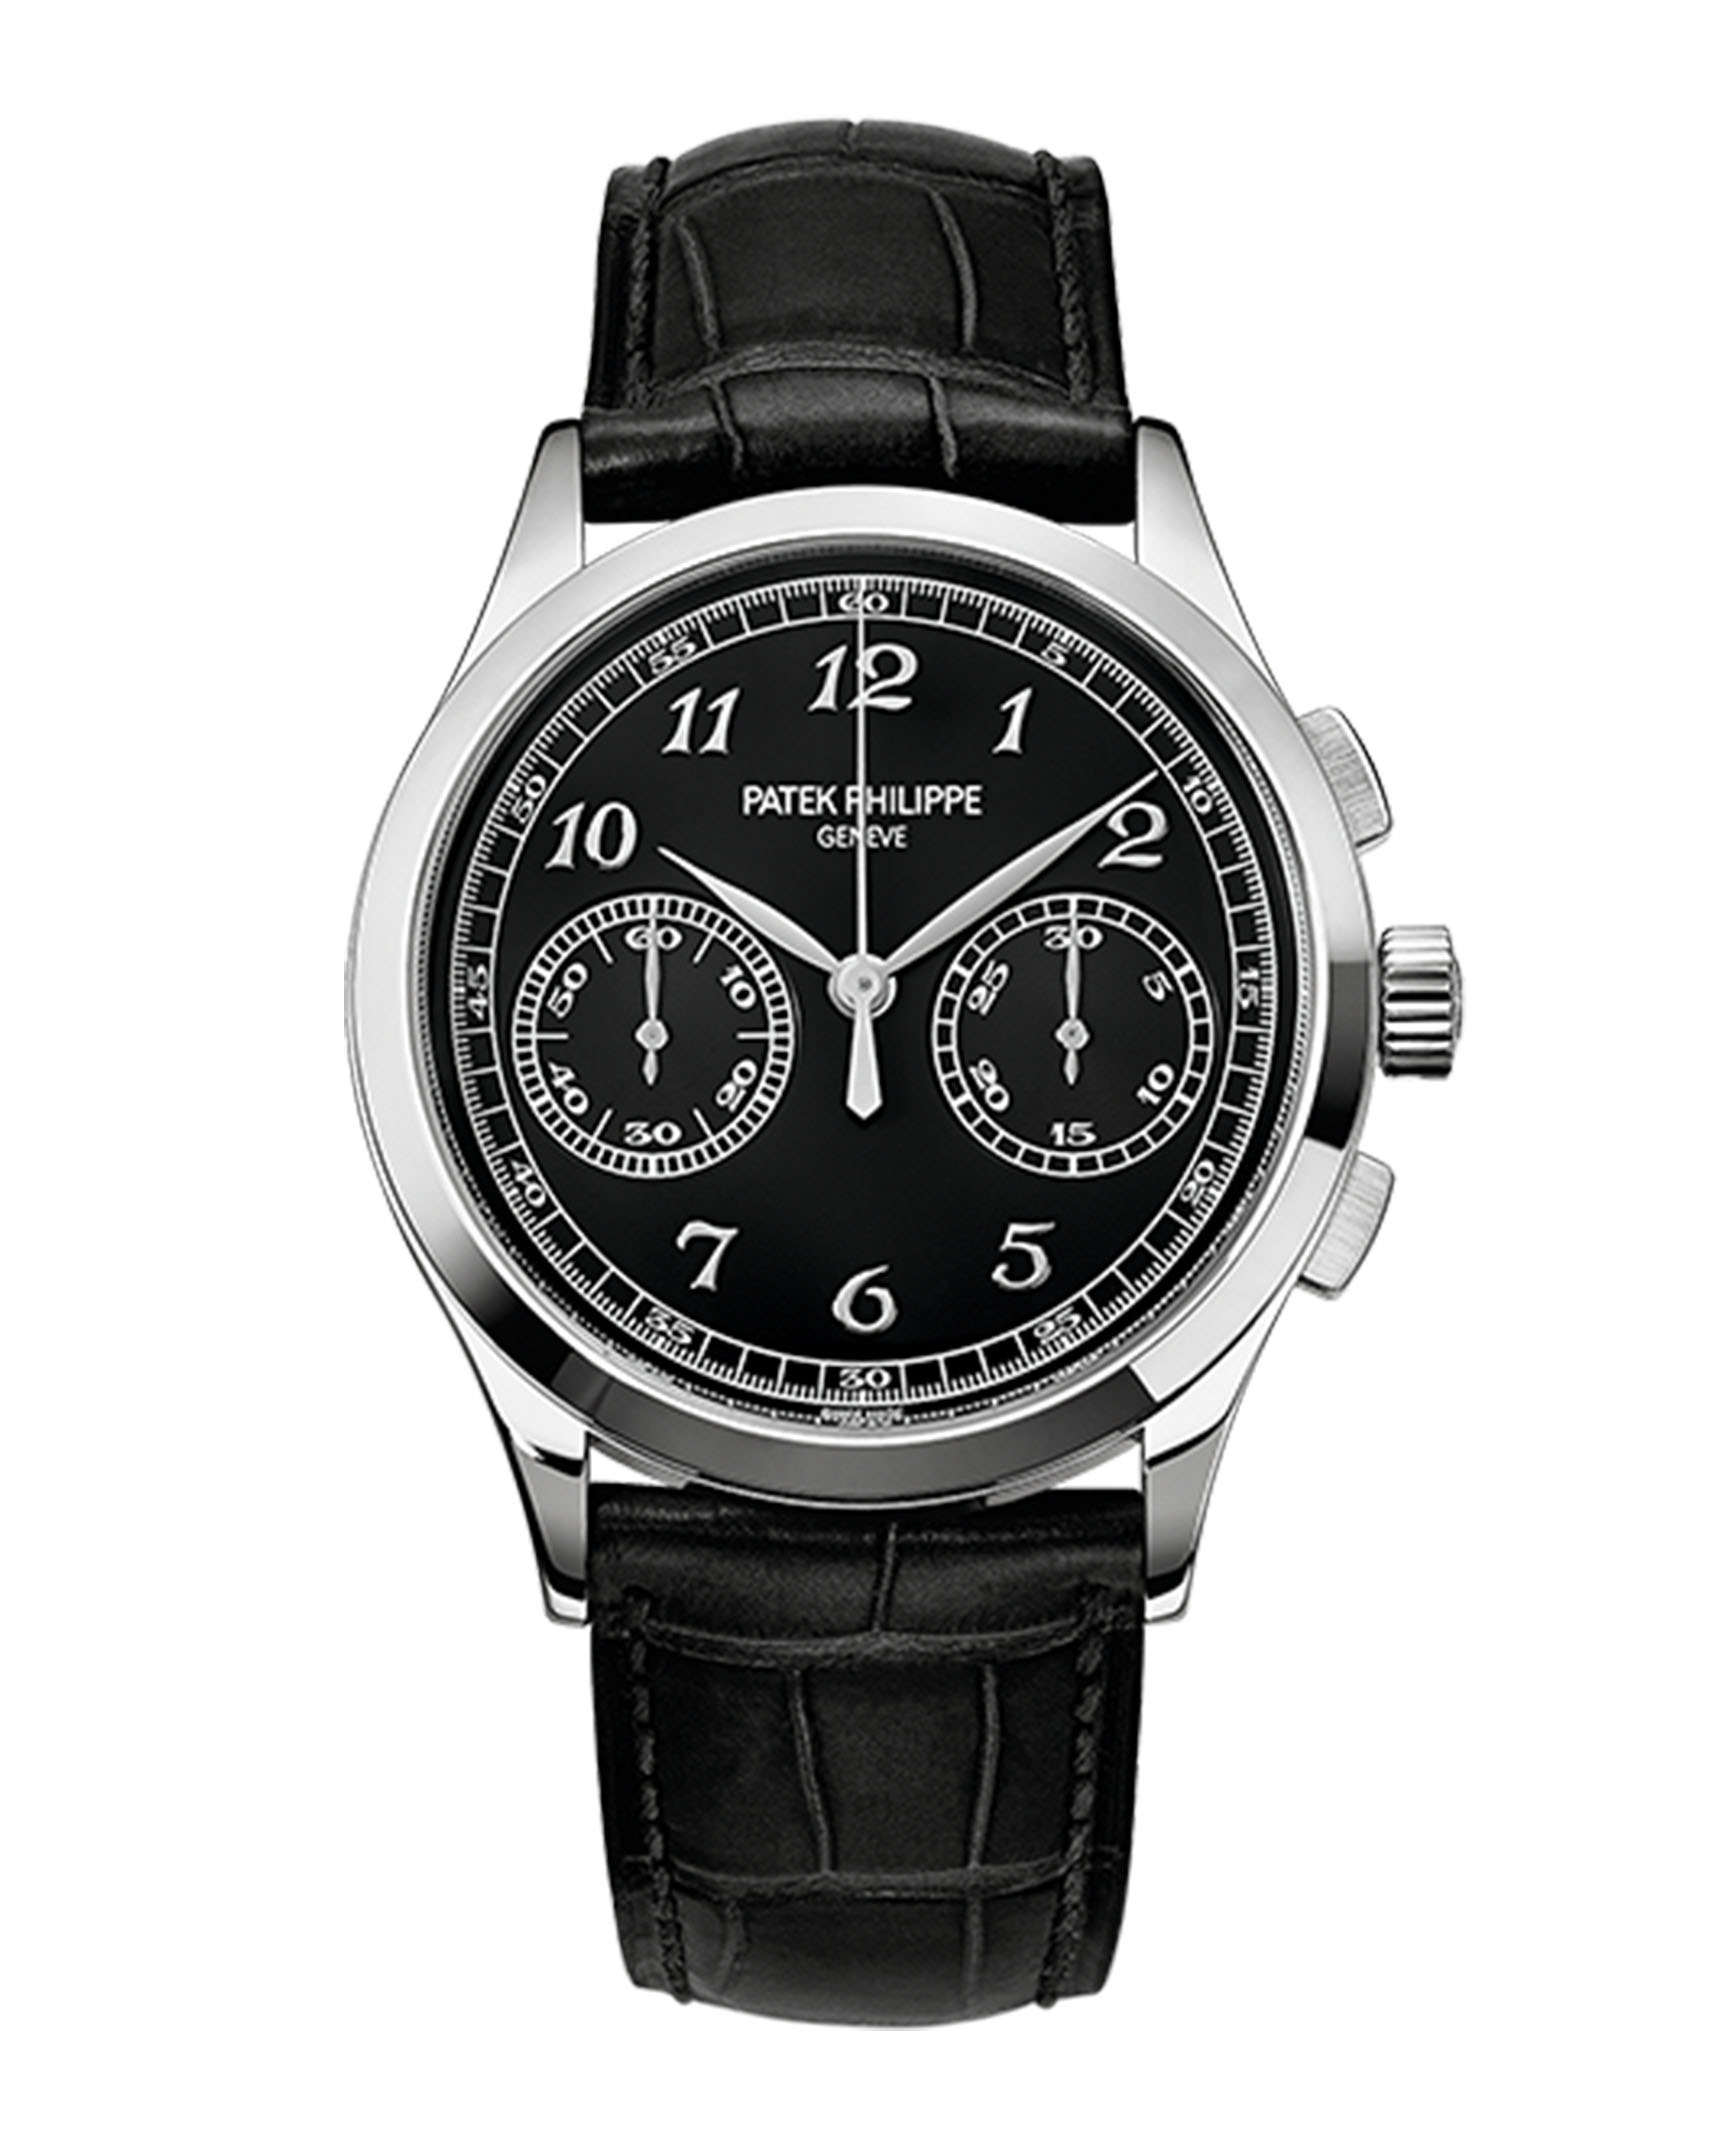 5170g 010 White Gold Men Complications